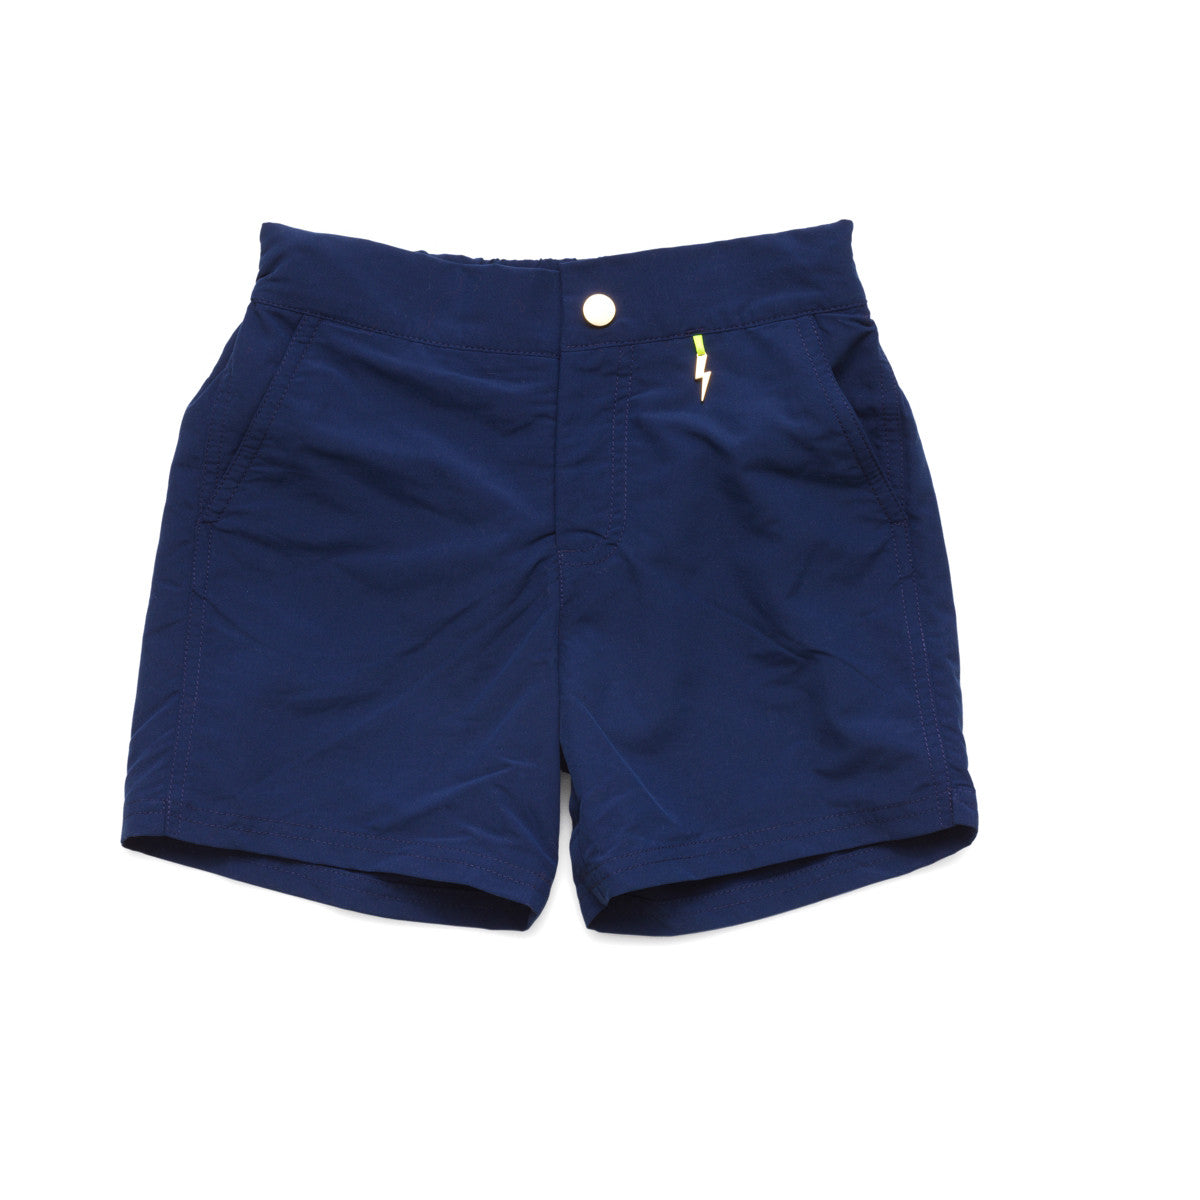 a1c9d748a8 Navy tailored swim shorts with contrast zip detail. Adjustable waist, side  pockets, quick